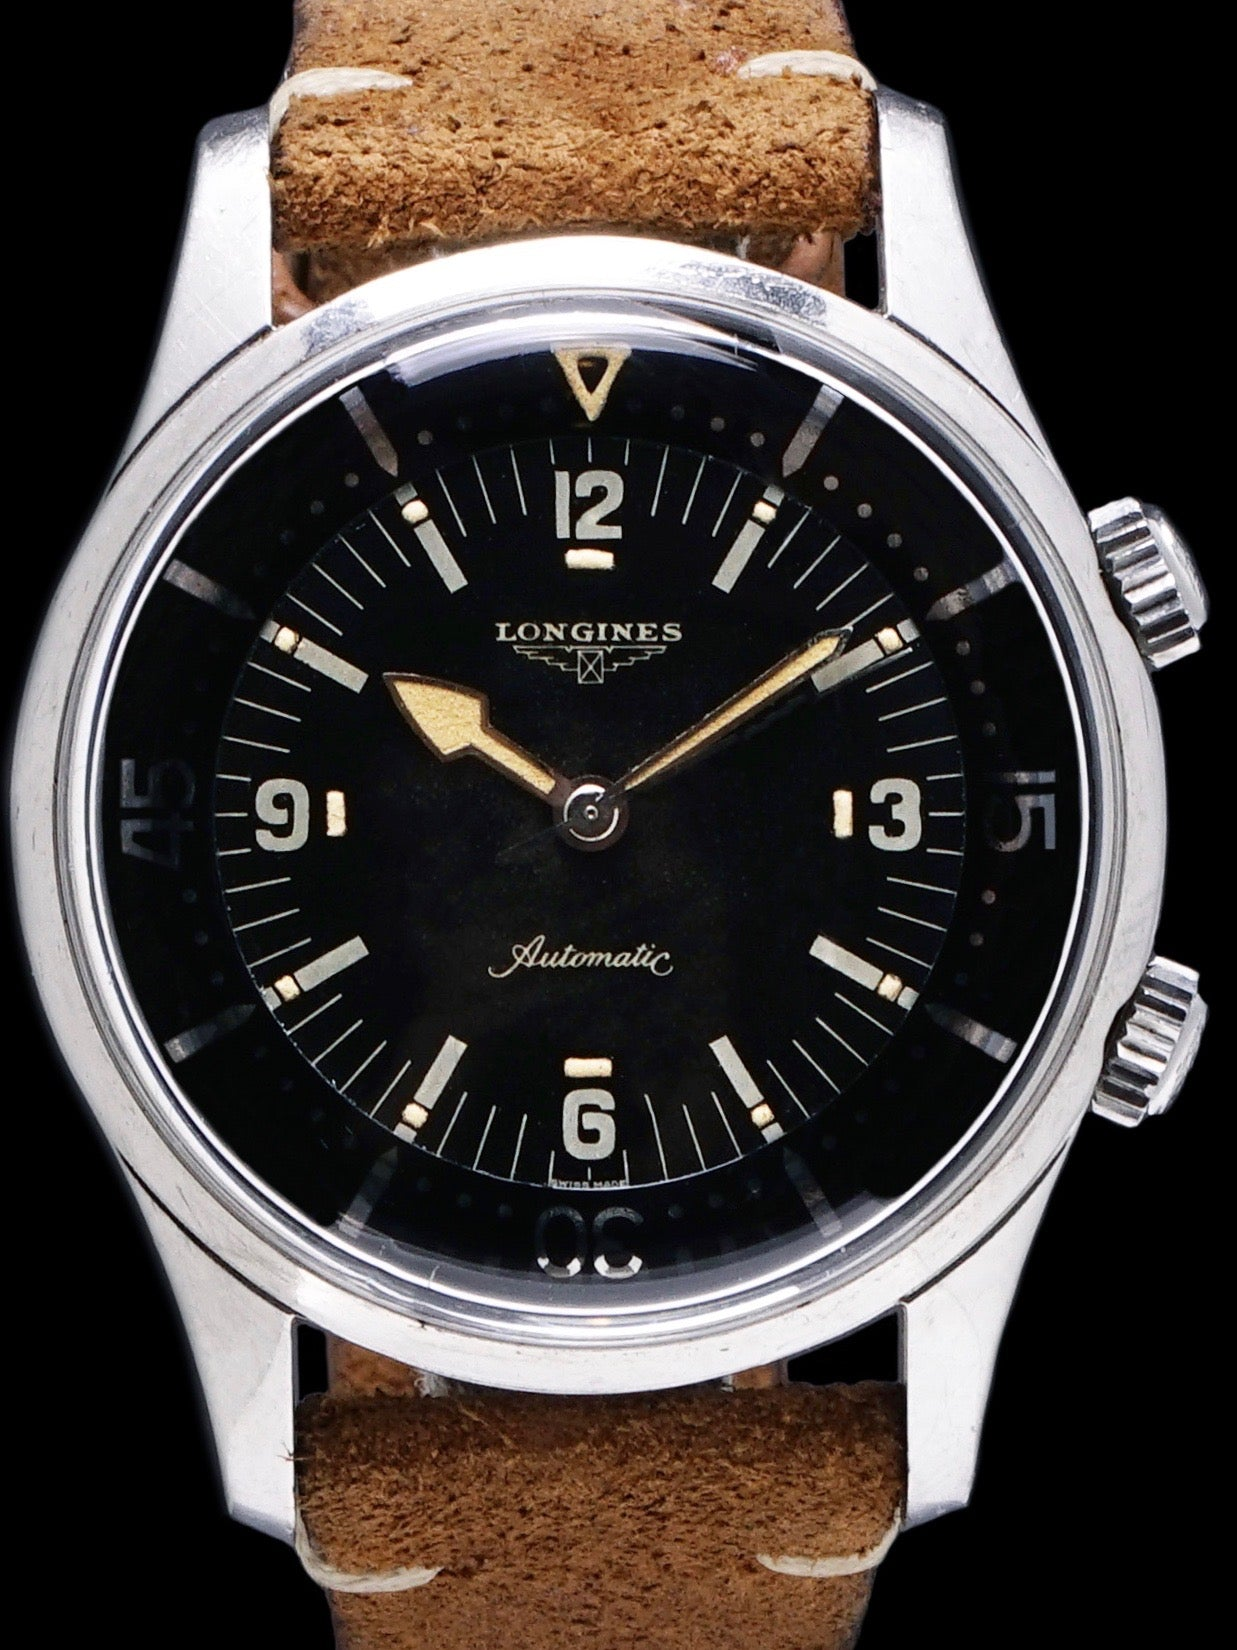 1961 Longines Super Compressor (Ref. 7150-1)